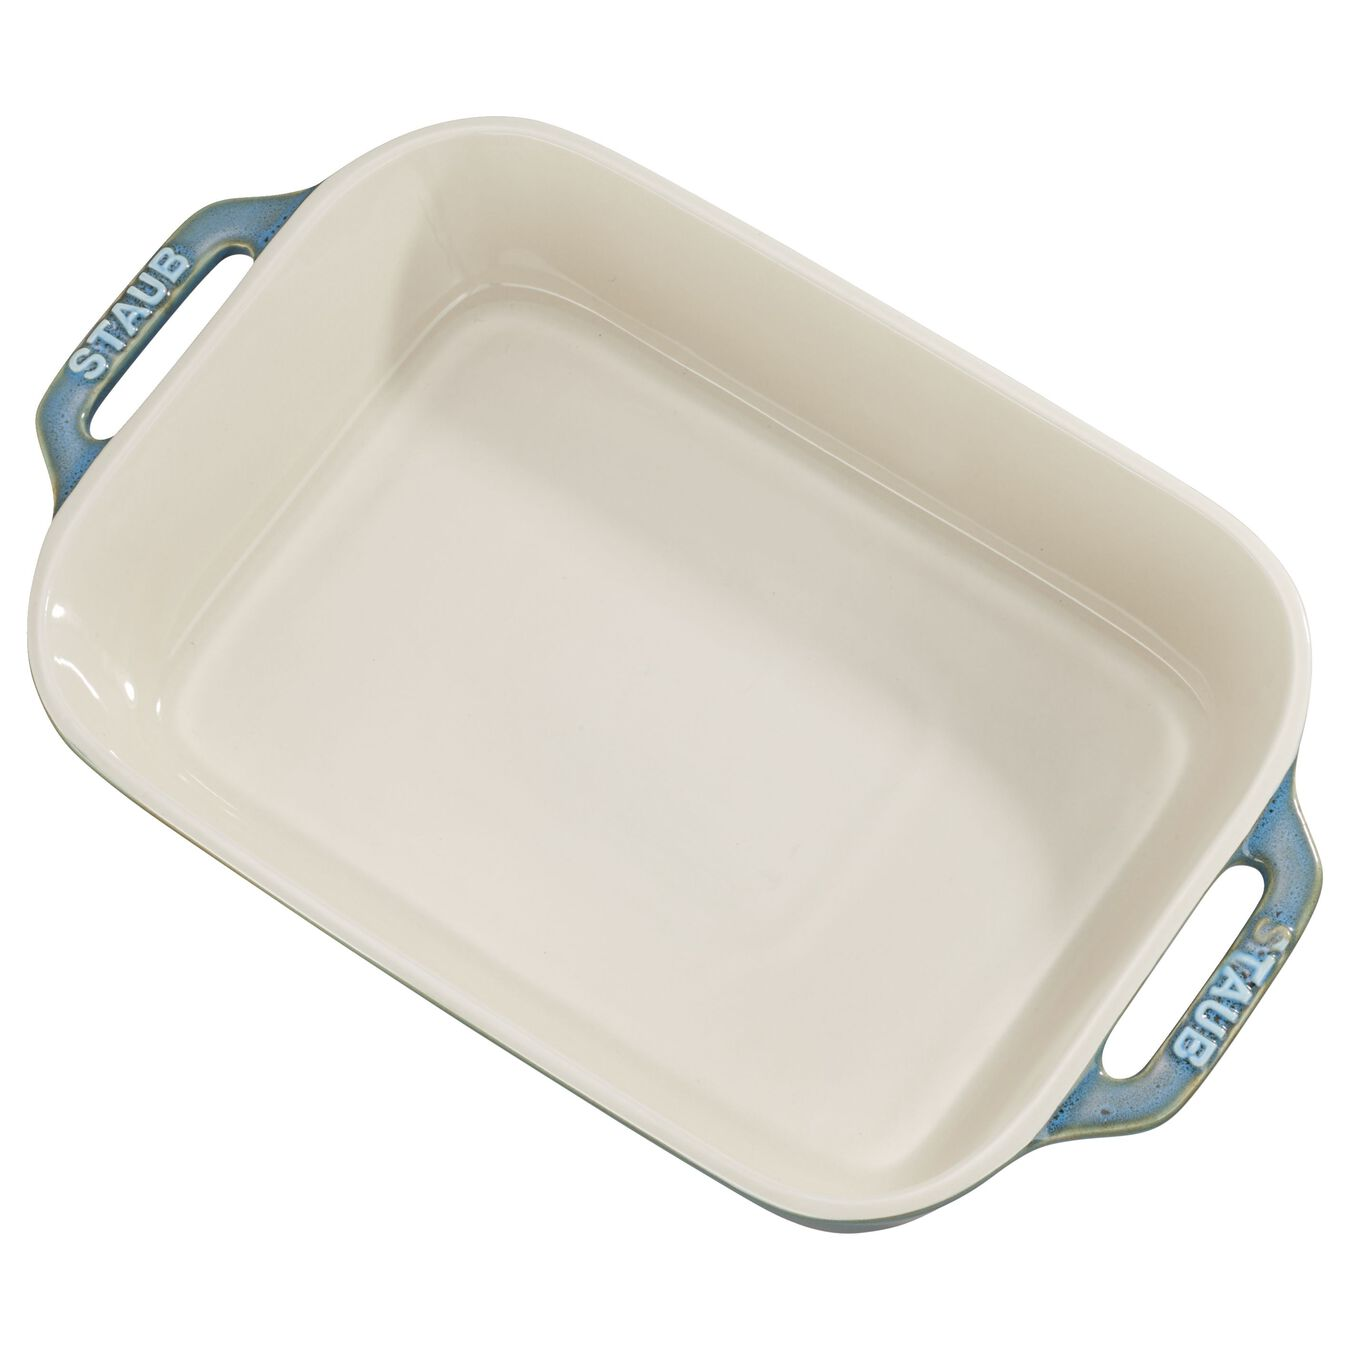 2-pc Rectangular Baking Dish Set - Rustic Turquoise,,large 3